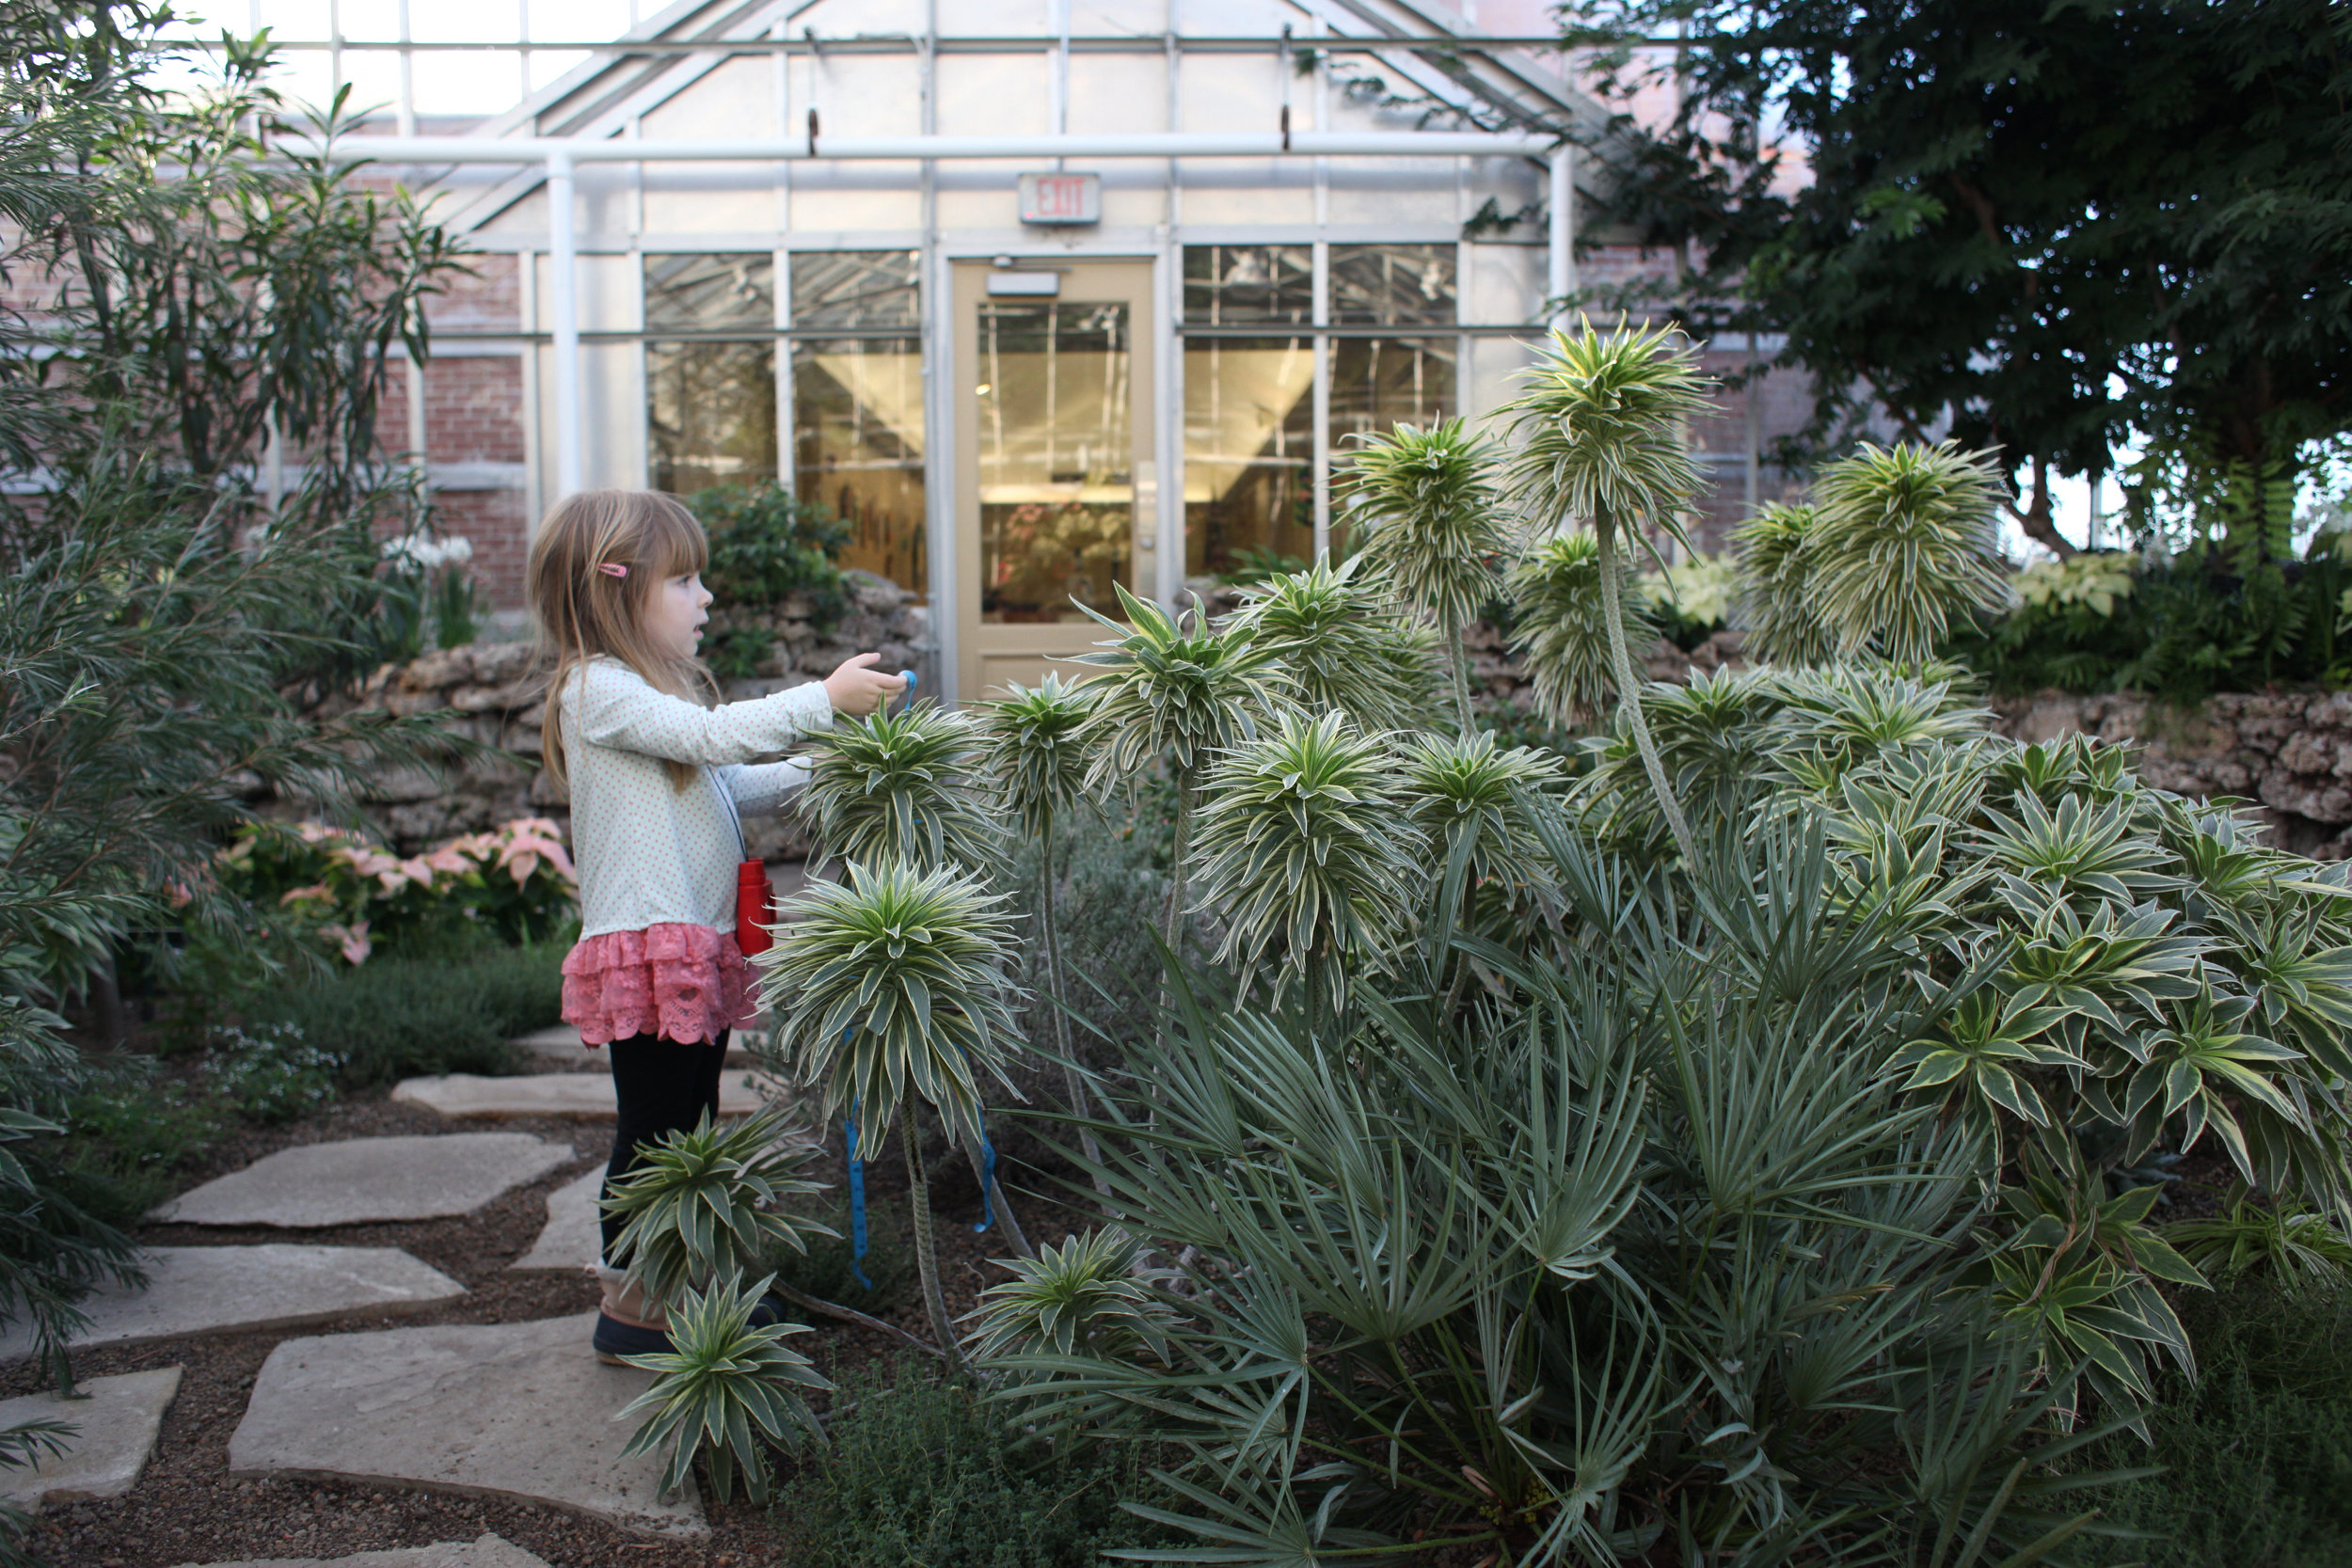 There are 3 main rooms at Oak Park Conservatory. This front room changes with the seasons.  The largest room is a tropical fern room and the other is a desert room.  There is now also an outdoor play area check it out when the weather is good.